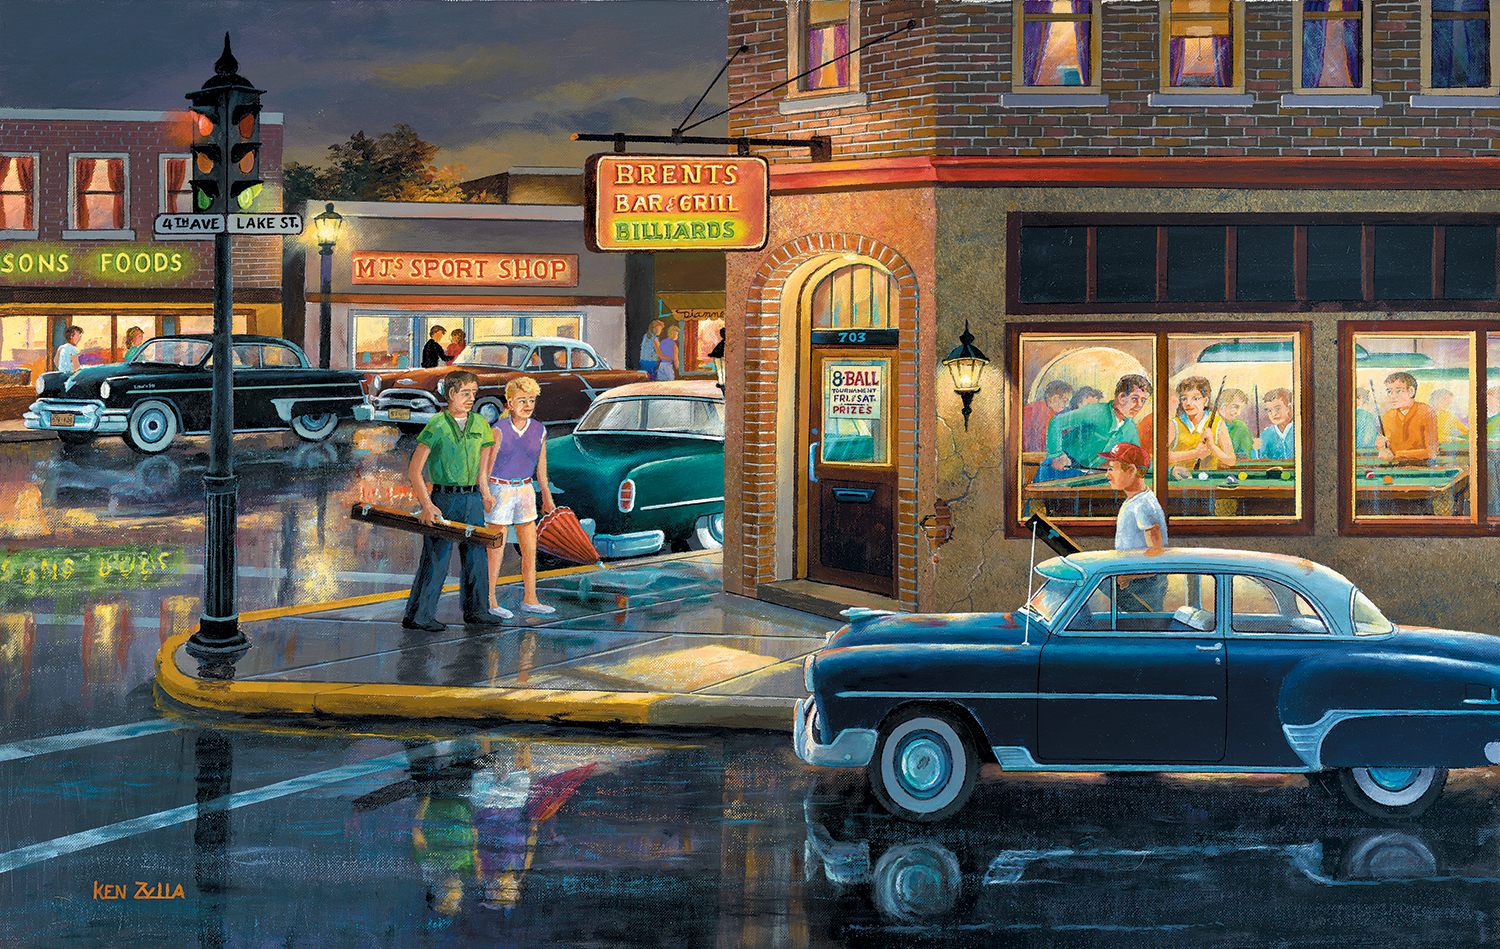 sunsout-ken-zylla-small-town-saturday-night-550-teile-puzzle-sunsout-37767